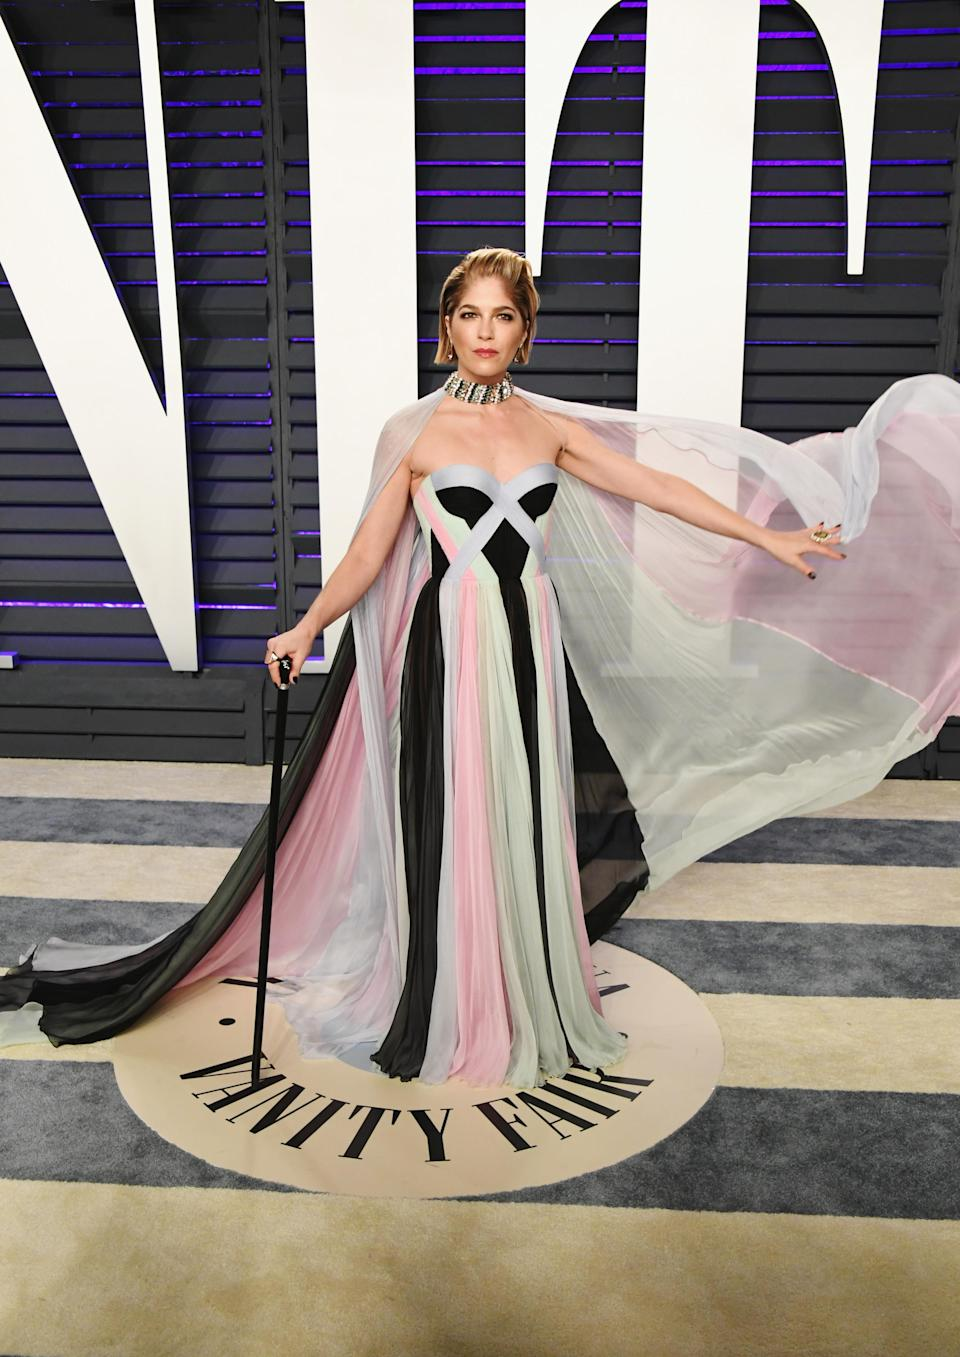 Selma Blair attends the 2019 Vanity Fair Oscar Party hosted by Radhika Jones<em> (Getty Images)</em>